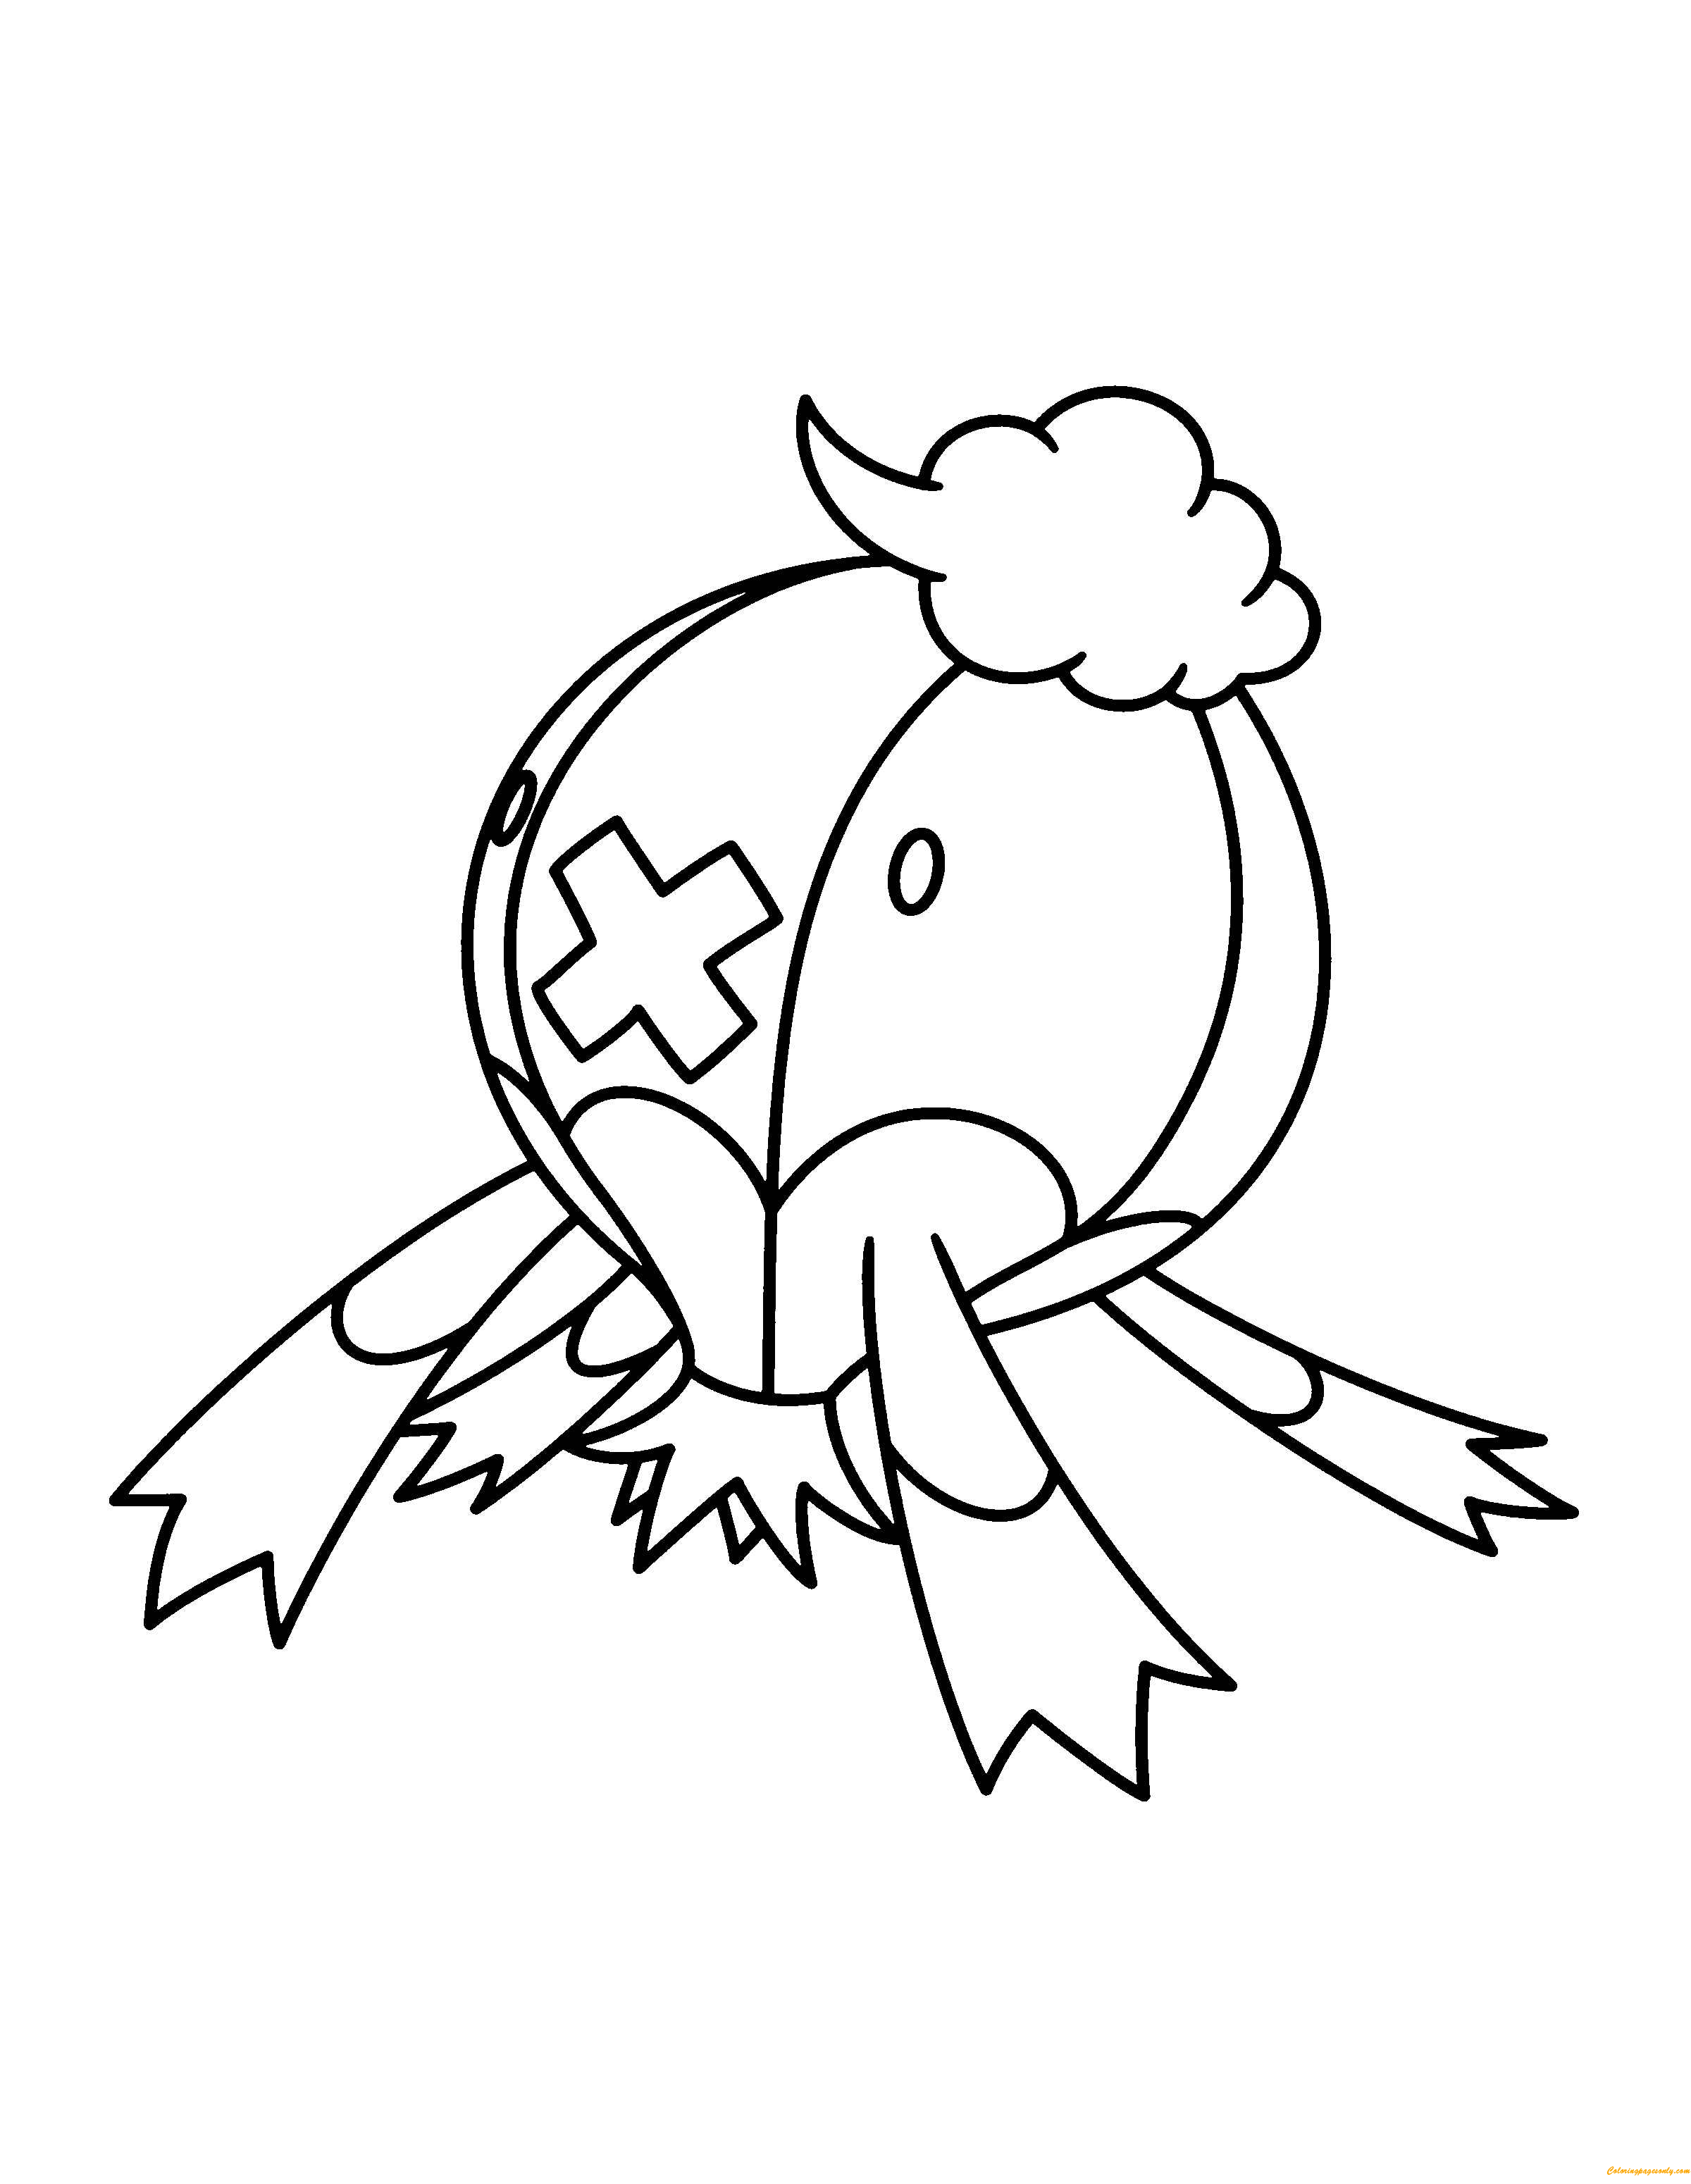 Drifblim Pokemon Coloring Page  Free Pages Online